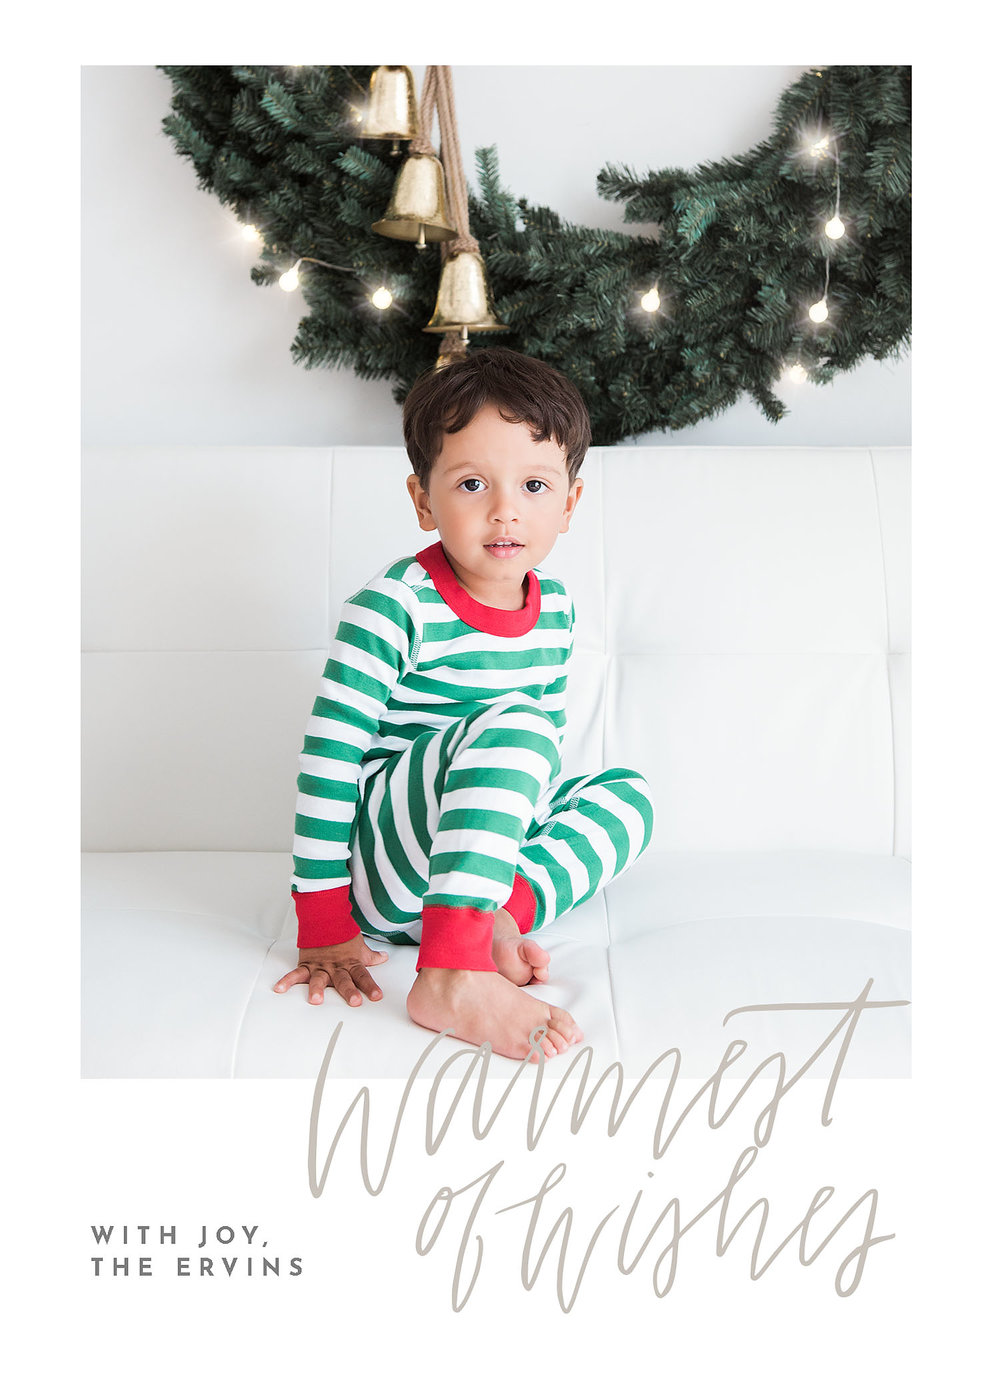 Christmas-mini-sessions-holiday-photography-richmond-hill-savannah-pooler-georgia5.jpg